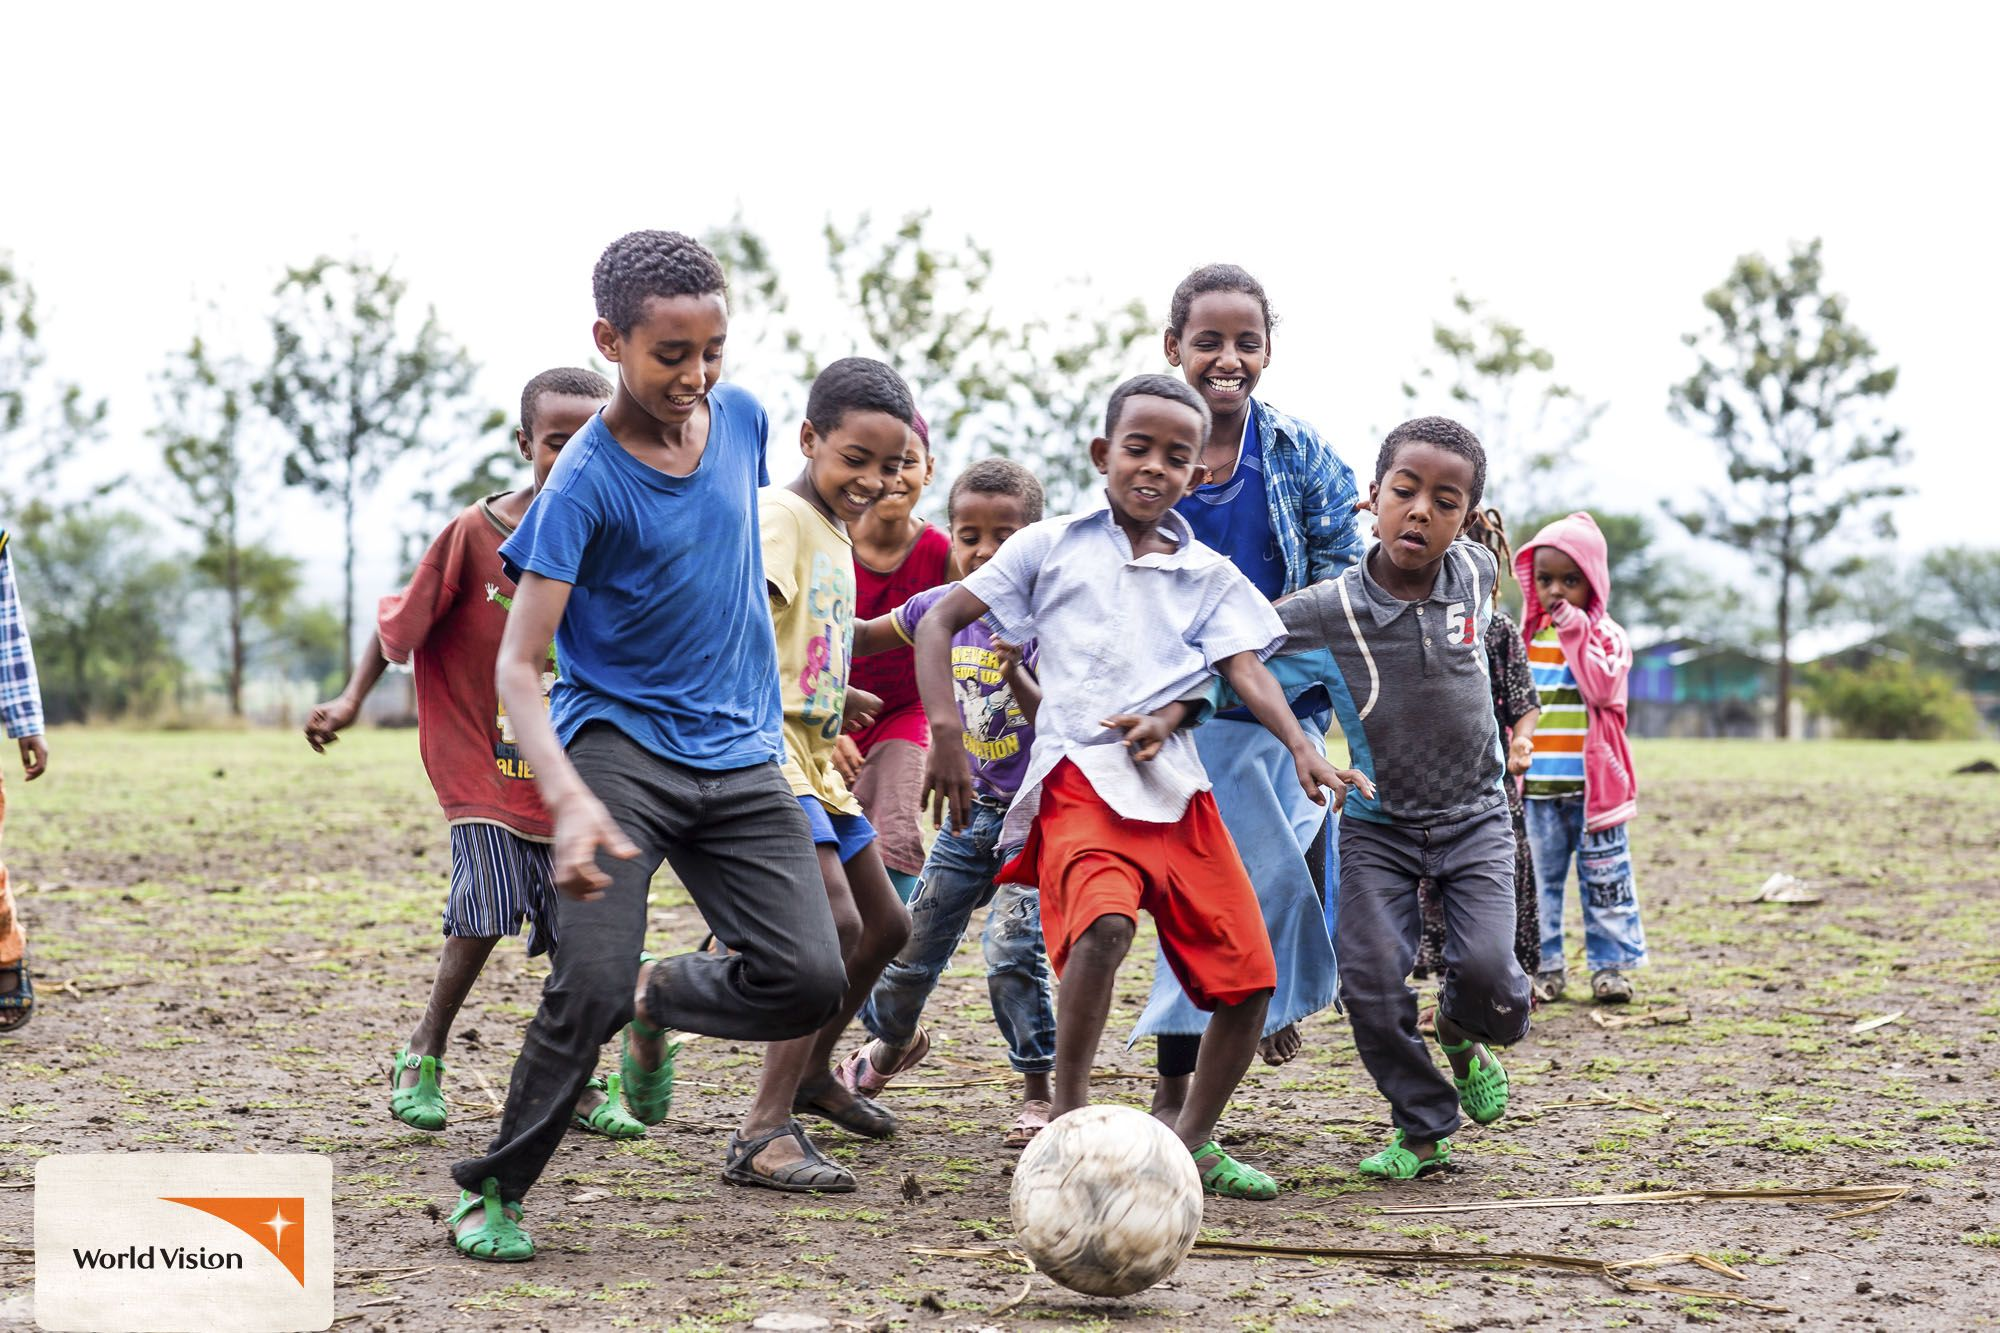 These kids in Ethiopia love to play a good game of